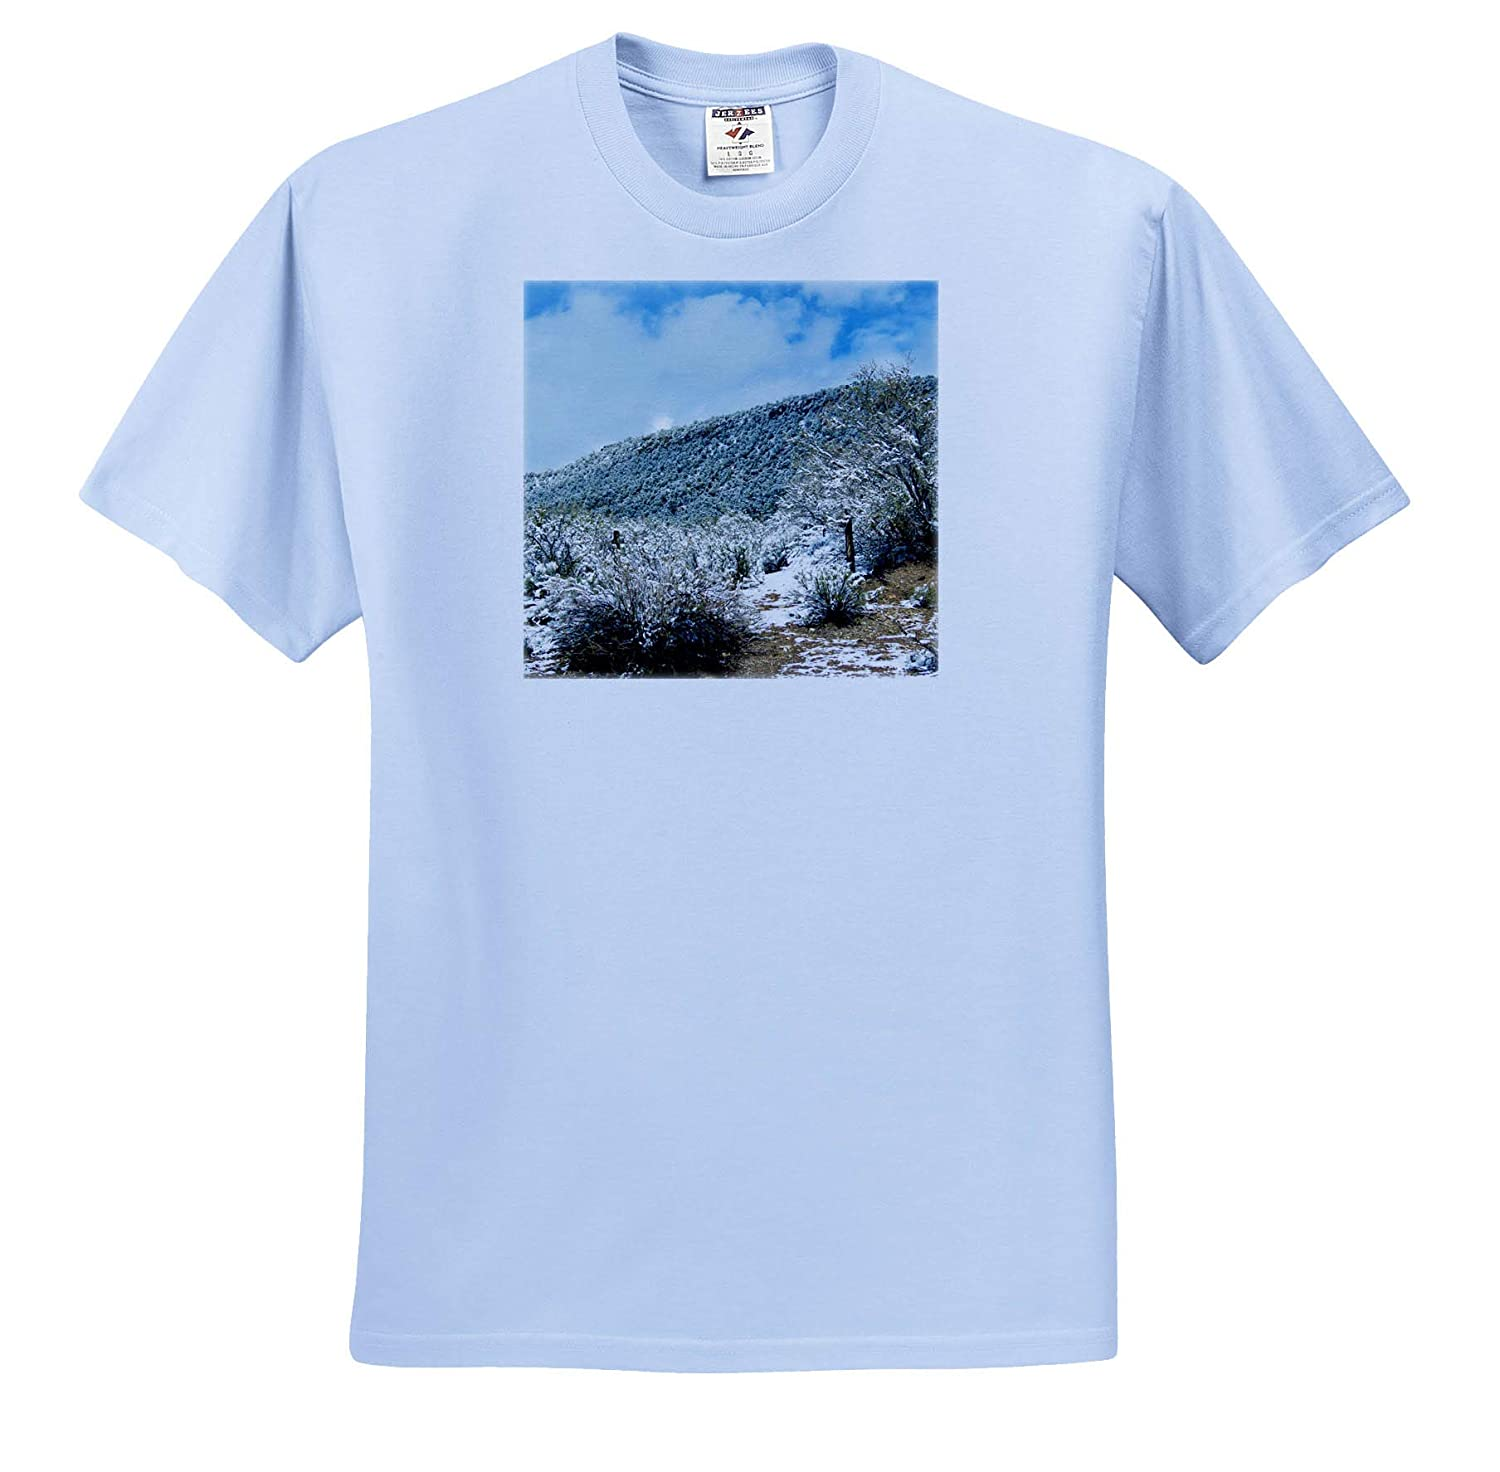 Adult T-Shirt XL 3dRose Jos Fauxtographee- Mountain Snow on a Mountain just Dusted Slightly ts/_317881